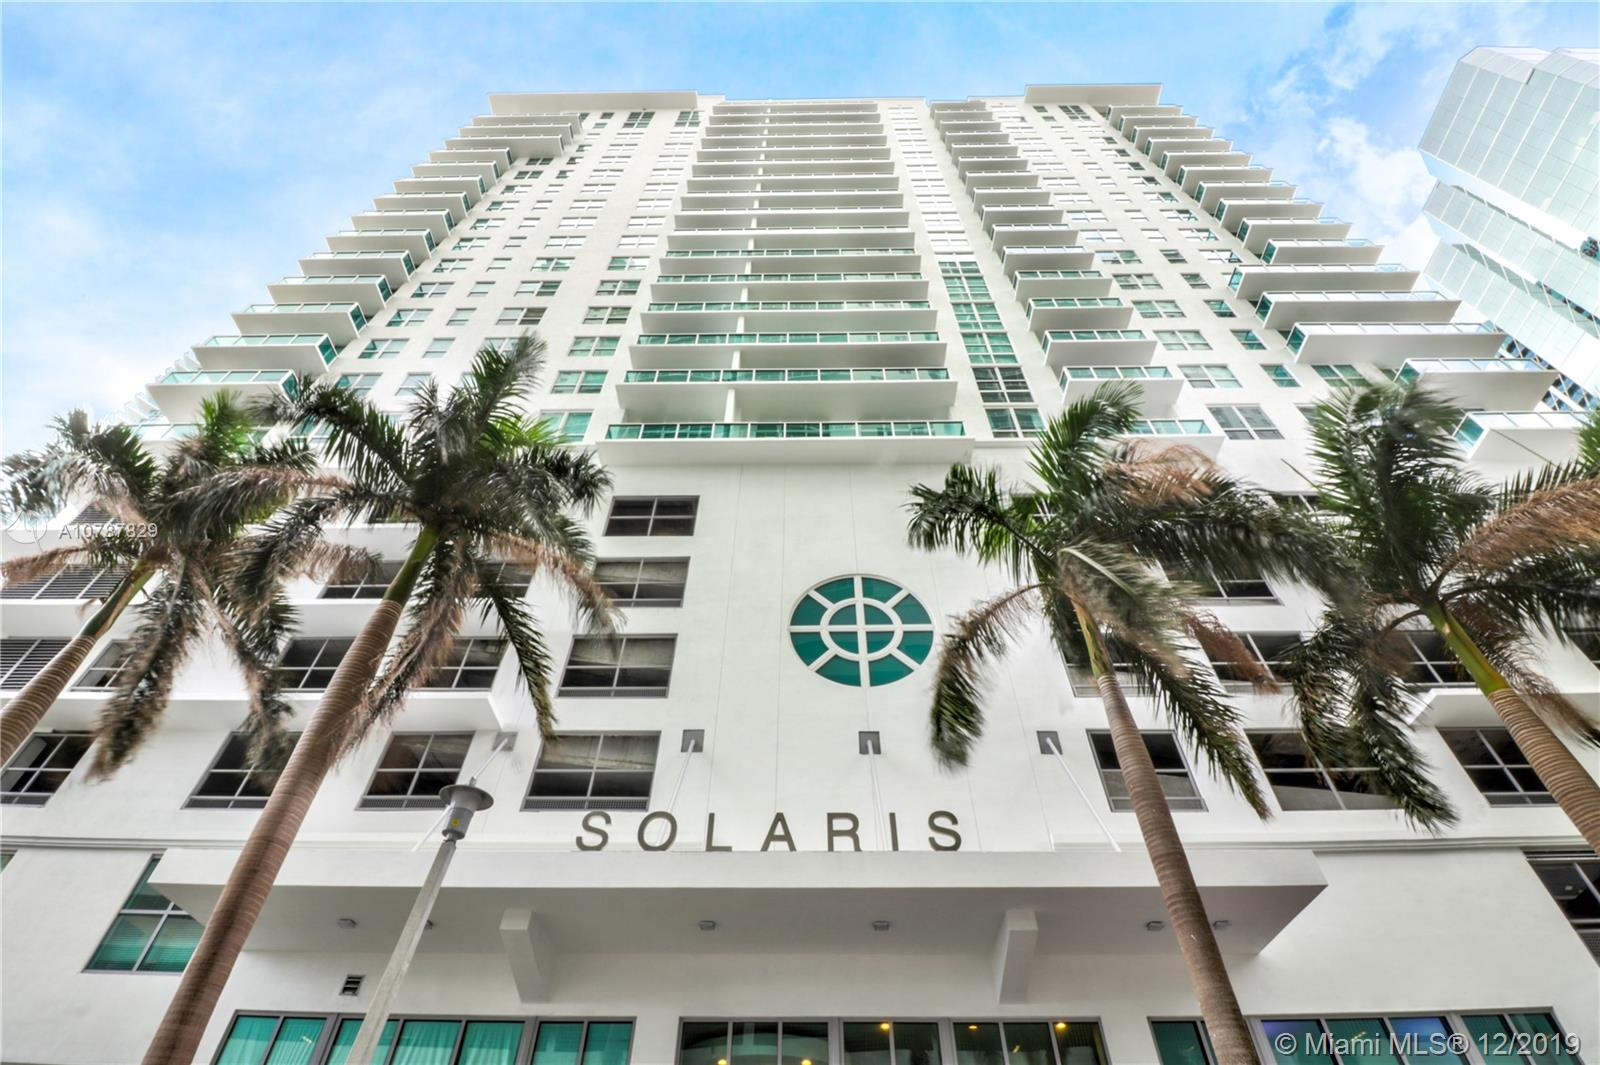 186 SE 12th Ter # 802, Miami, Florida 33131, 2 Bedrooms Bedrooms, ,2 BathroomsBathrooms,Residential,For Sale,186 SE 12th Ter # 802,A10787829